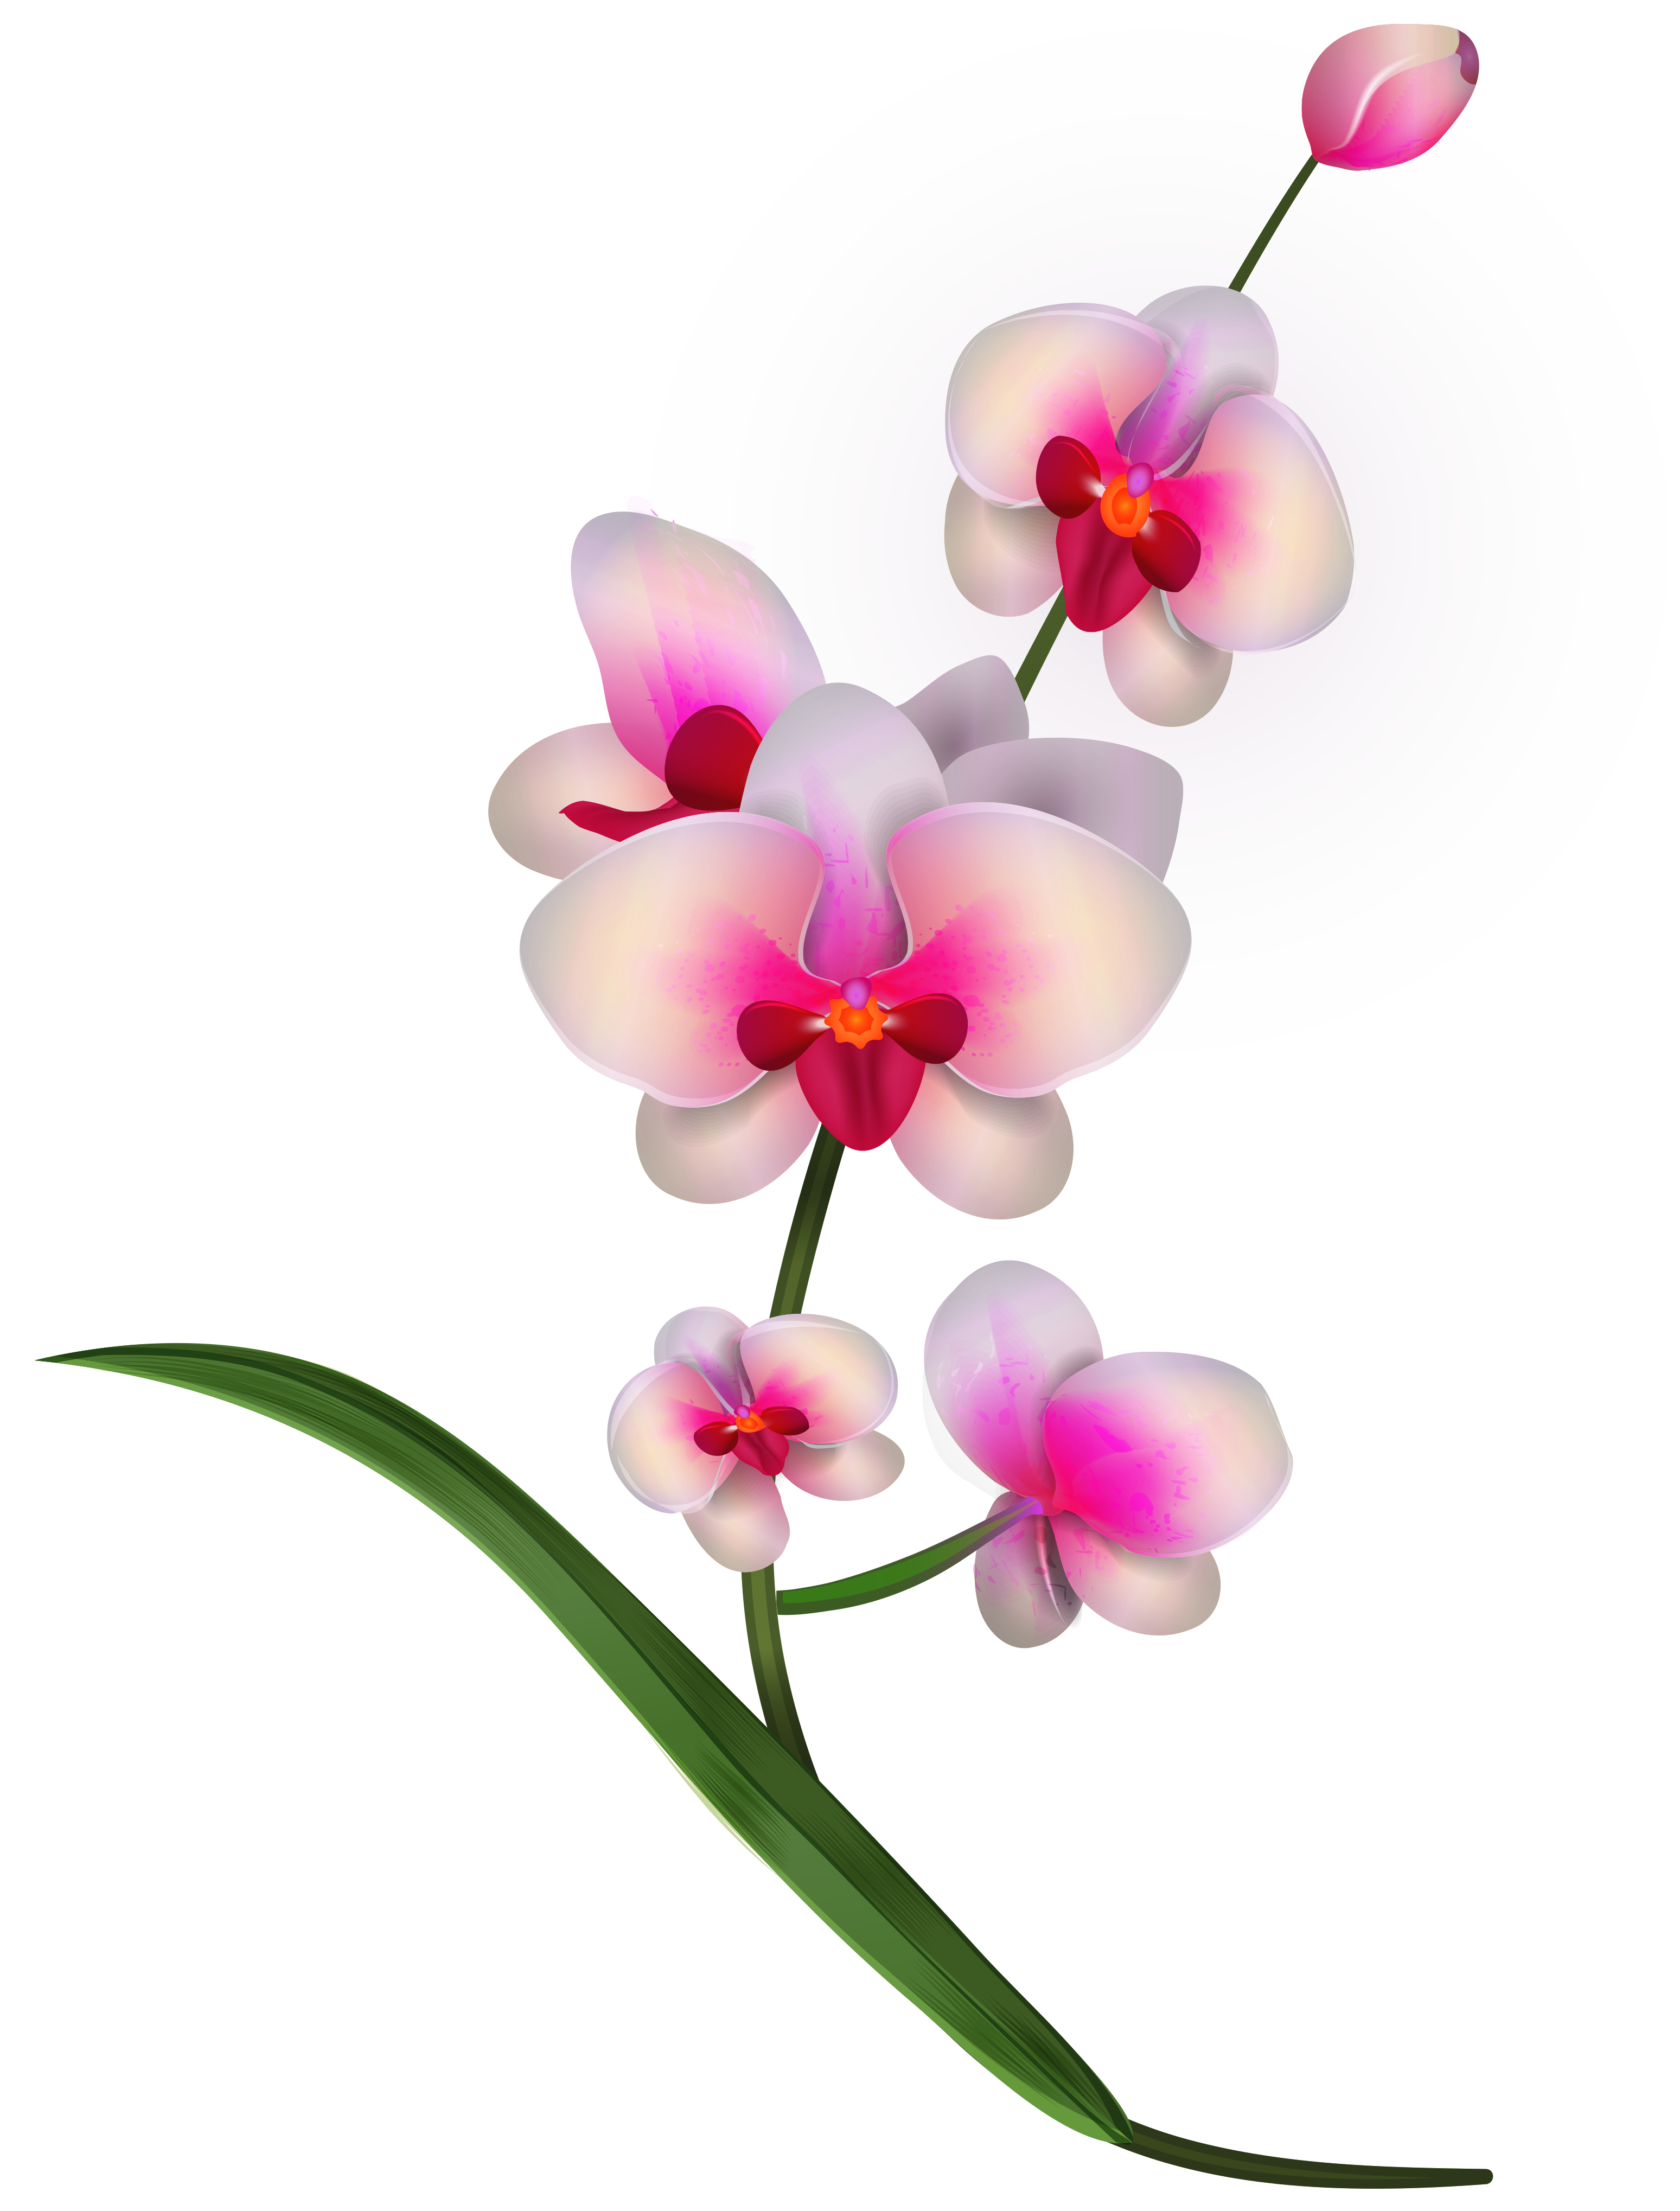 Orchid flower clipart image black and white library Orchid Clipart PNG Image   flowers   Pinterest   Orchid and Flowers image black and white library